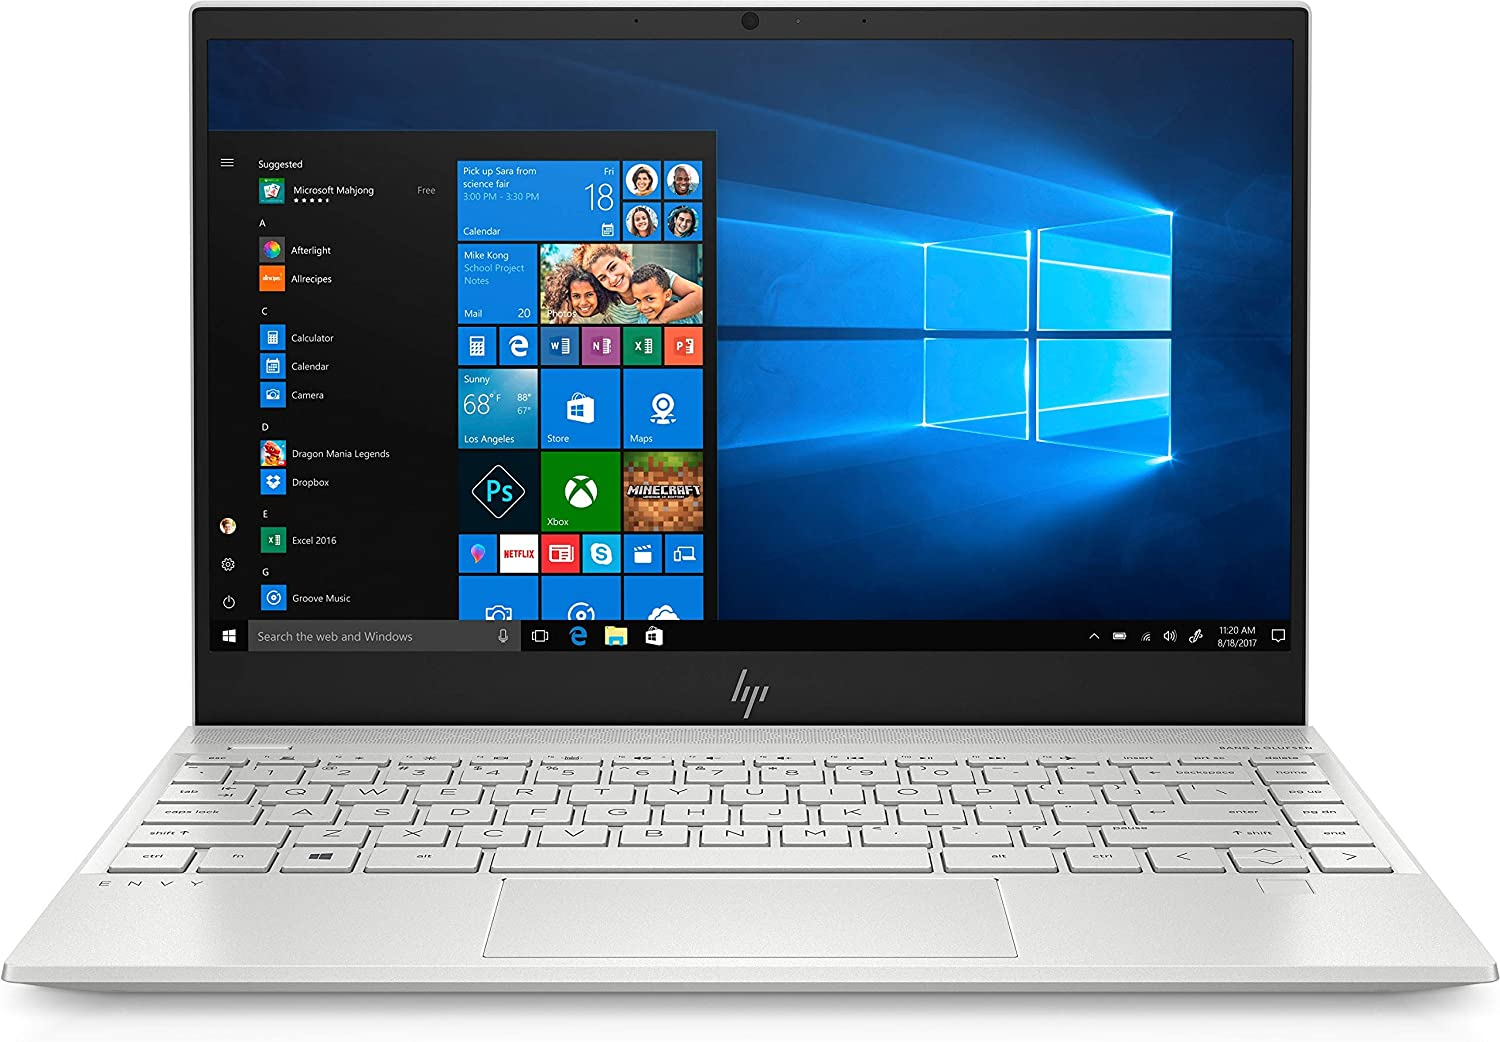 10 Best Laptops For Adobe Photoshop in 2021 [Expert Recommendations]